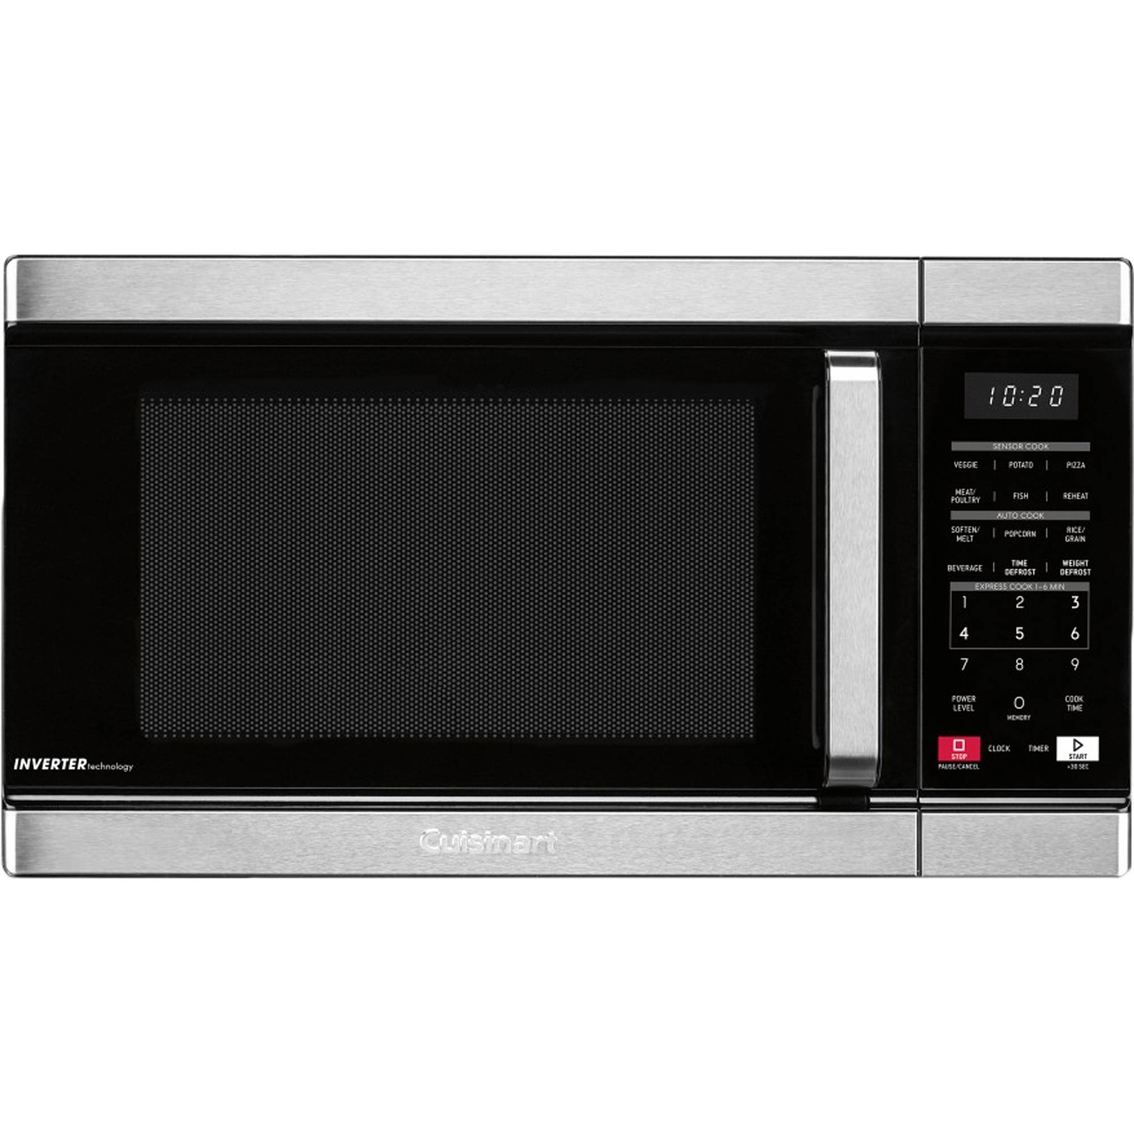 Convection Microwave With Sensor Cook